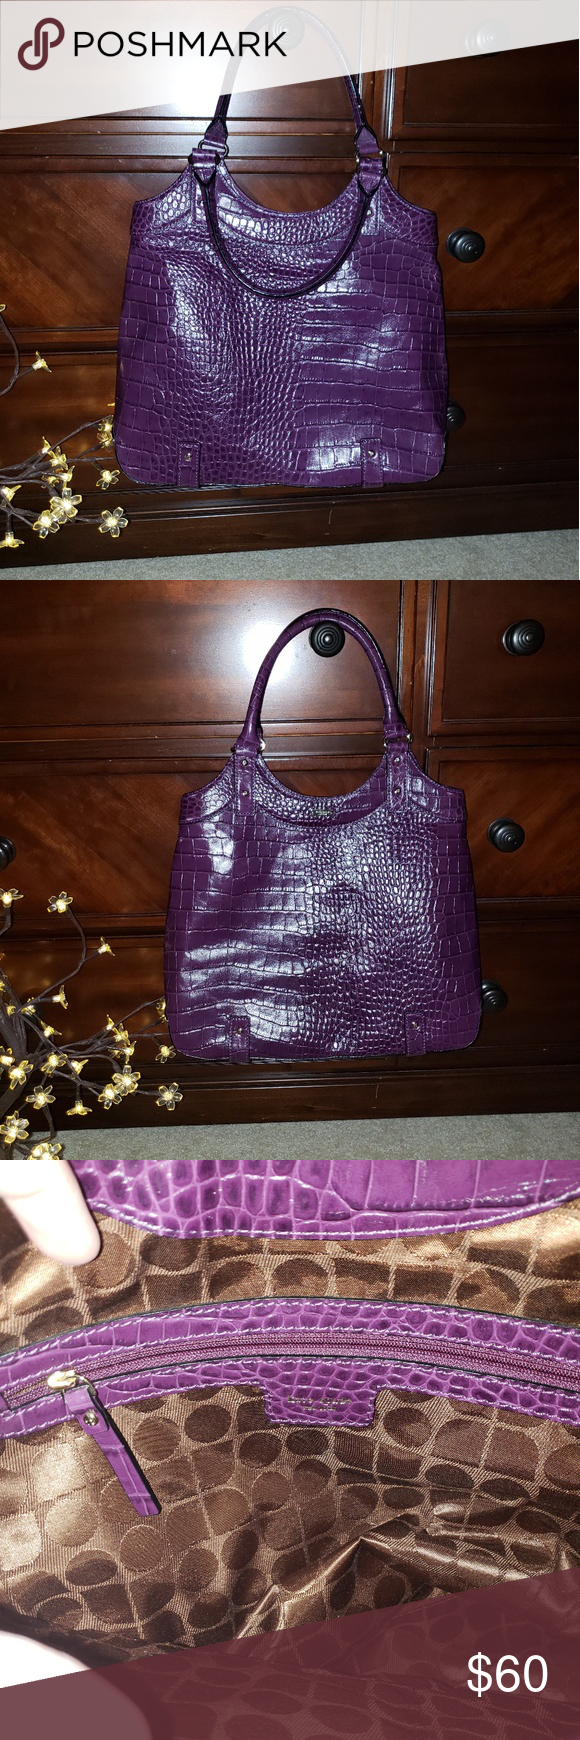 "NWOT Kate Spade New York bag/purse NWOT. Beautiful Kate Soade New York purple bag/purse. Crocodile print.  15"" x 4.5 x 11.5"" w/ 7"" drop from double handles kate spade Bags Totes"